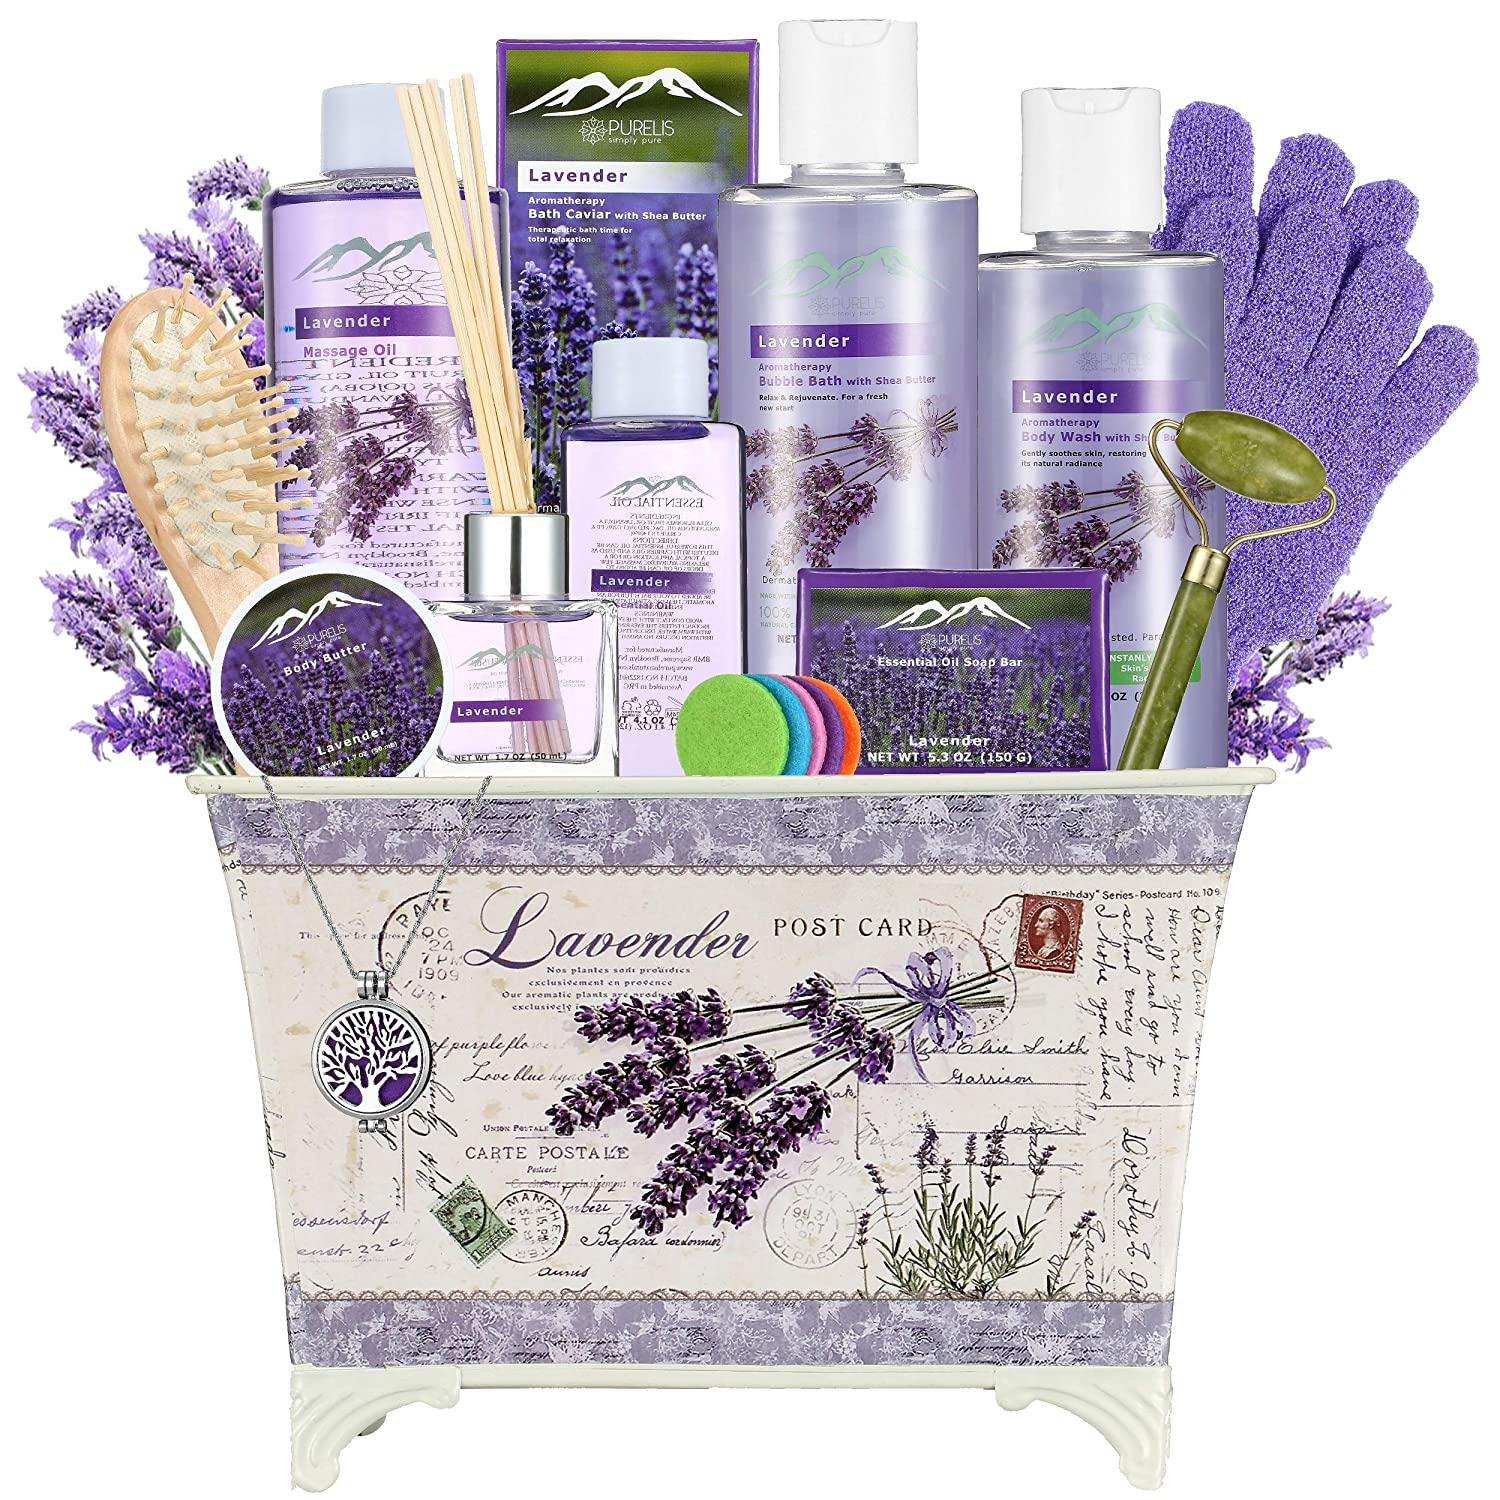 Lavender Ultimate Spa Gift Basket By Broadwaybasketeers Com: Lavender Spa Gift Basket For Women